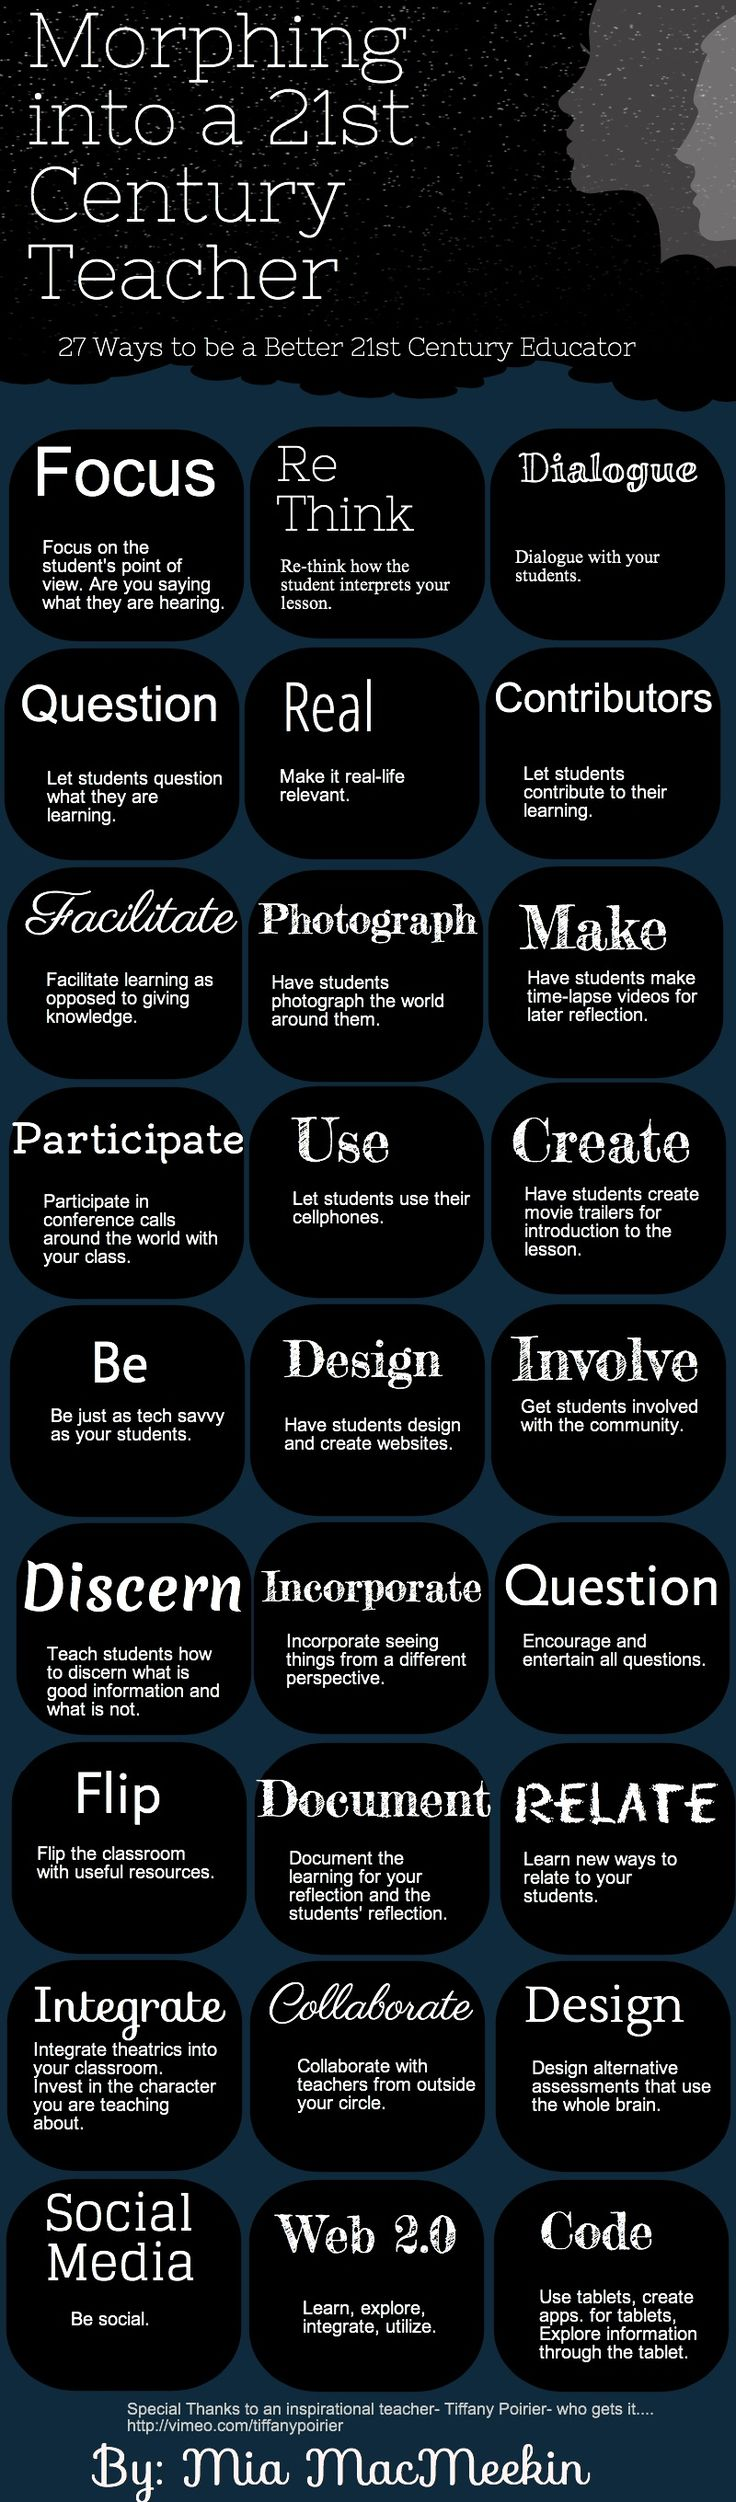 """The 21 C. Teacher (By Mia MacMeekin)     How many """"Been there!""""? How many opportunity areas?...     And if you want/need a checklist, check out this one! Its awesome cool: http://www.educatorstechnology.com/2013/04/6-great-tech-question-charts-for-21st.html"""